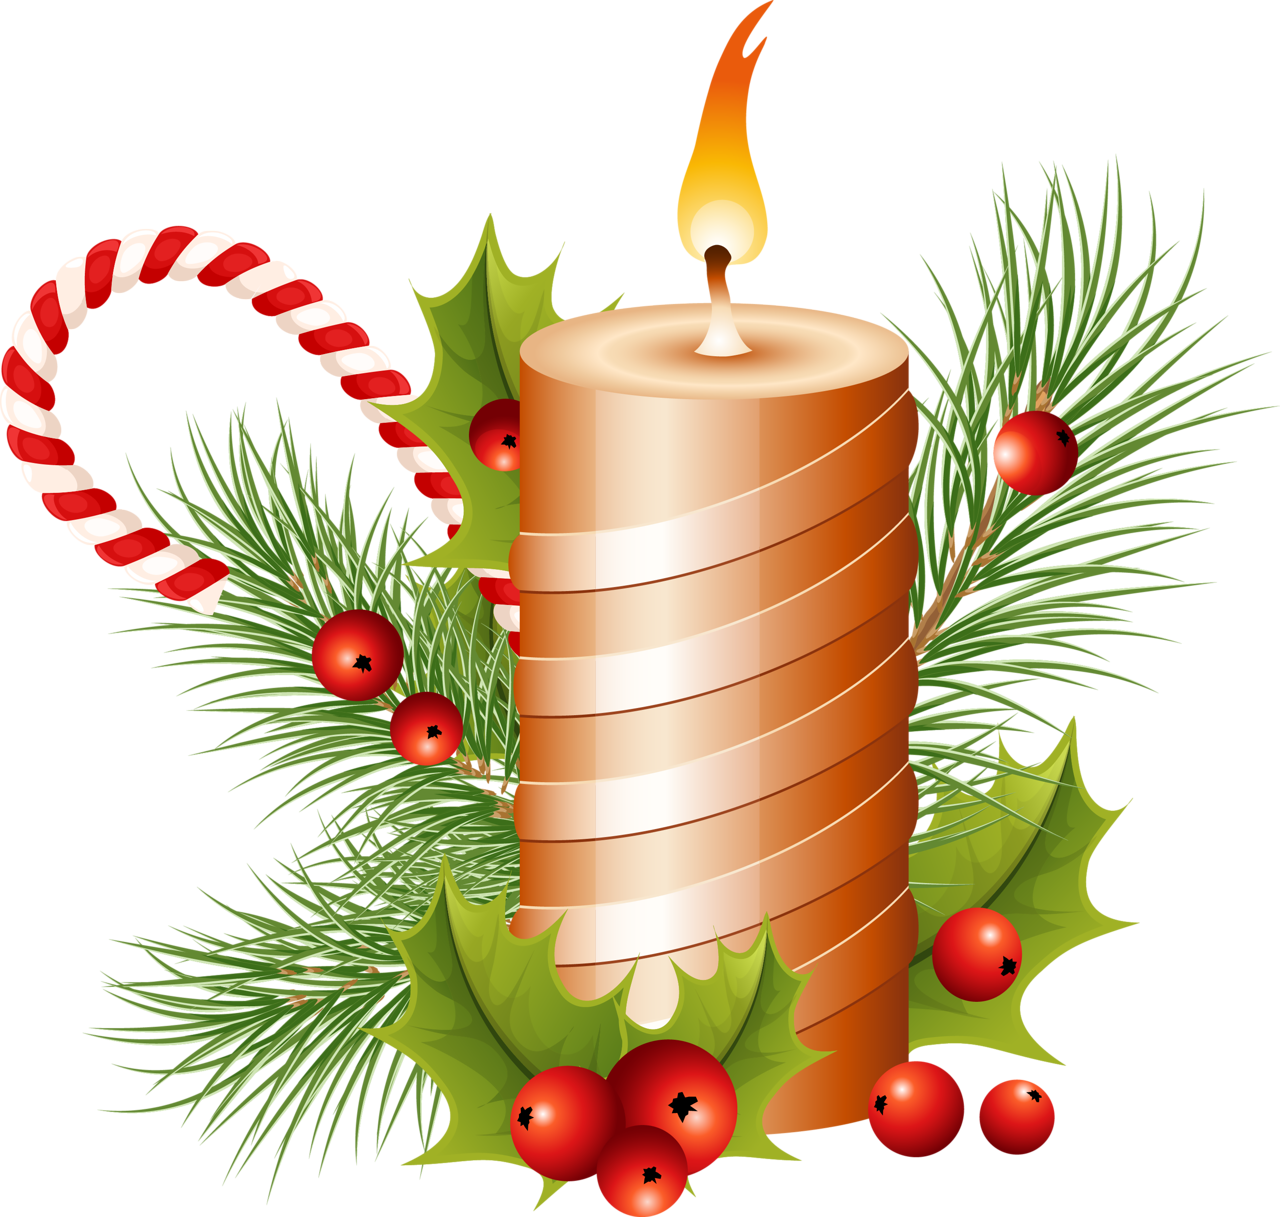 Christmas Candle Png Image - Candle, Transparent background PNG HD thumbnail